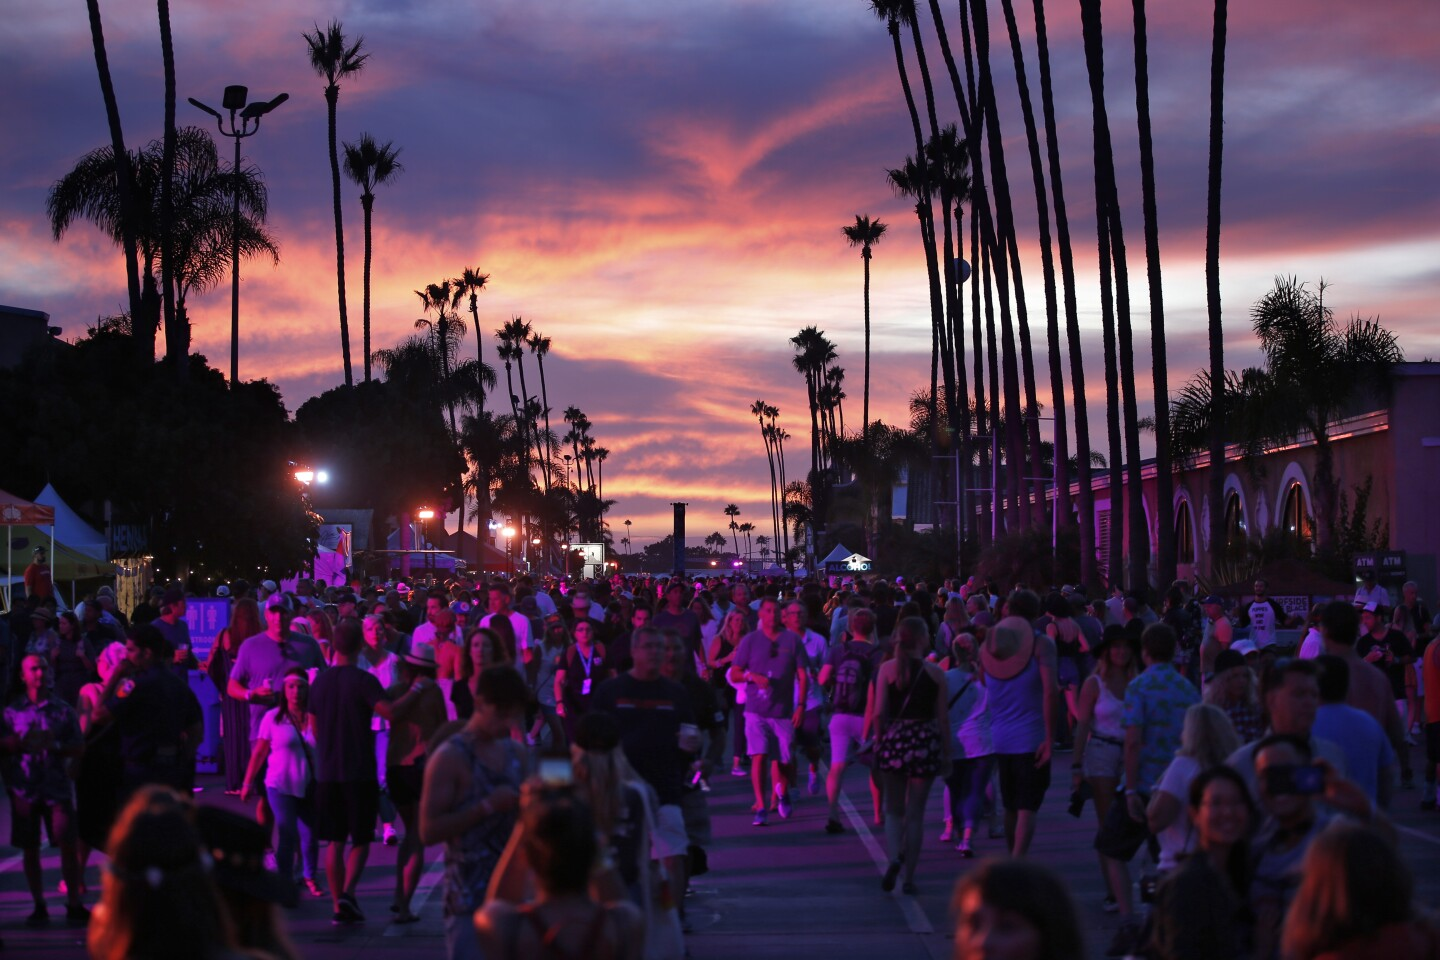 Fans walk through KAABOO Del Mar at sunset on Sept. 15, 2019.